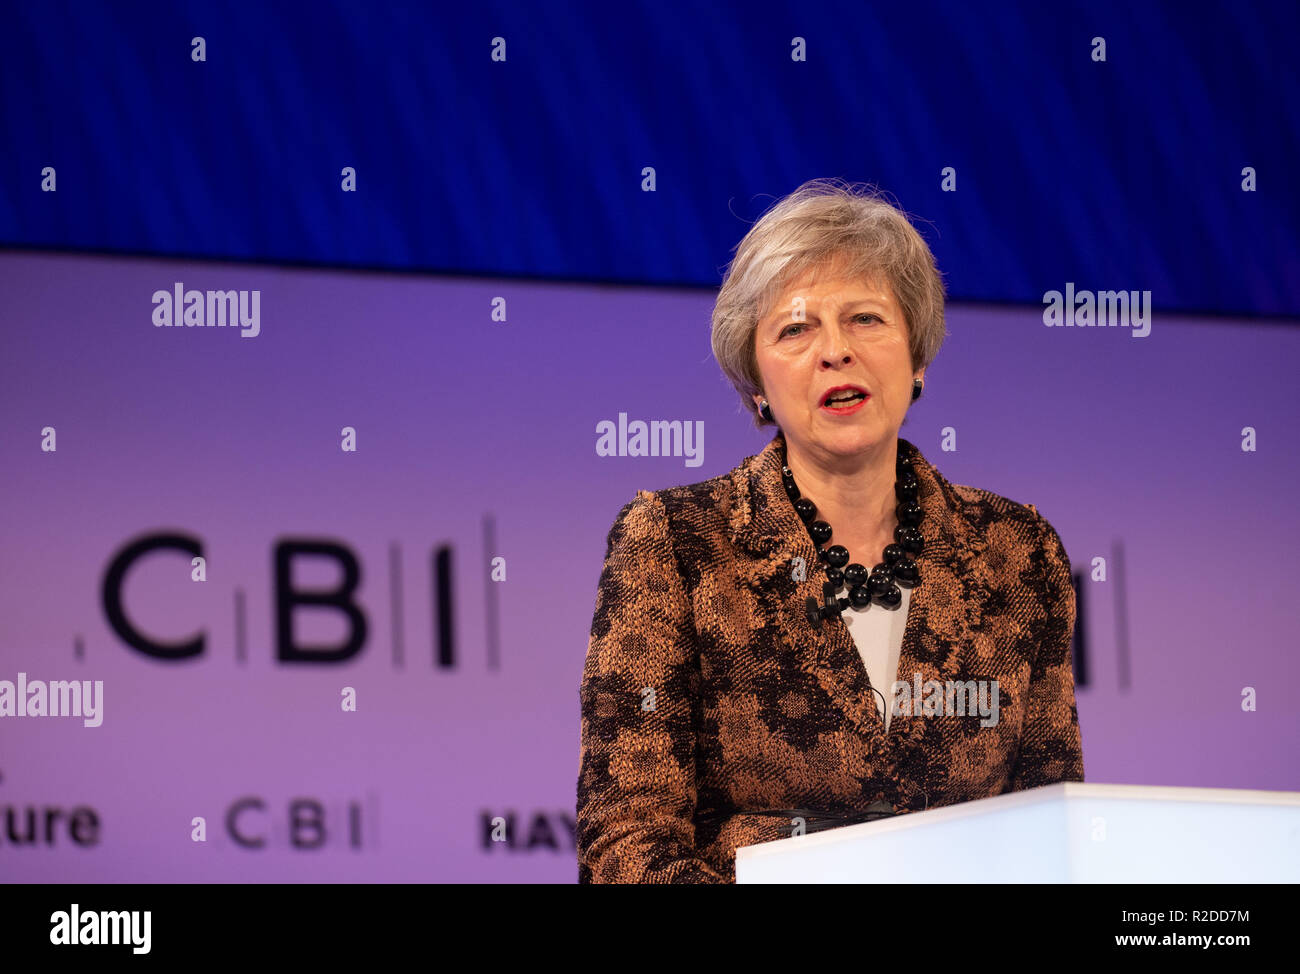 London, UK. 19th November, 2018. Prime Minister, Theresa May, gives the keynote address at The Confereration of British Industry (CBI) conference at the Intercontinental Hotel in North Greenwich. Credit: Tommy London/Alamy Live News - Stock Image